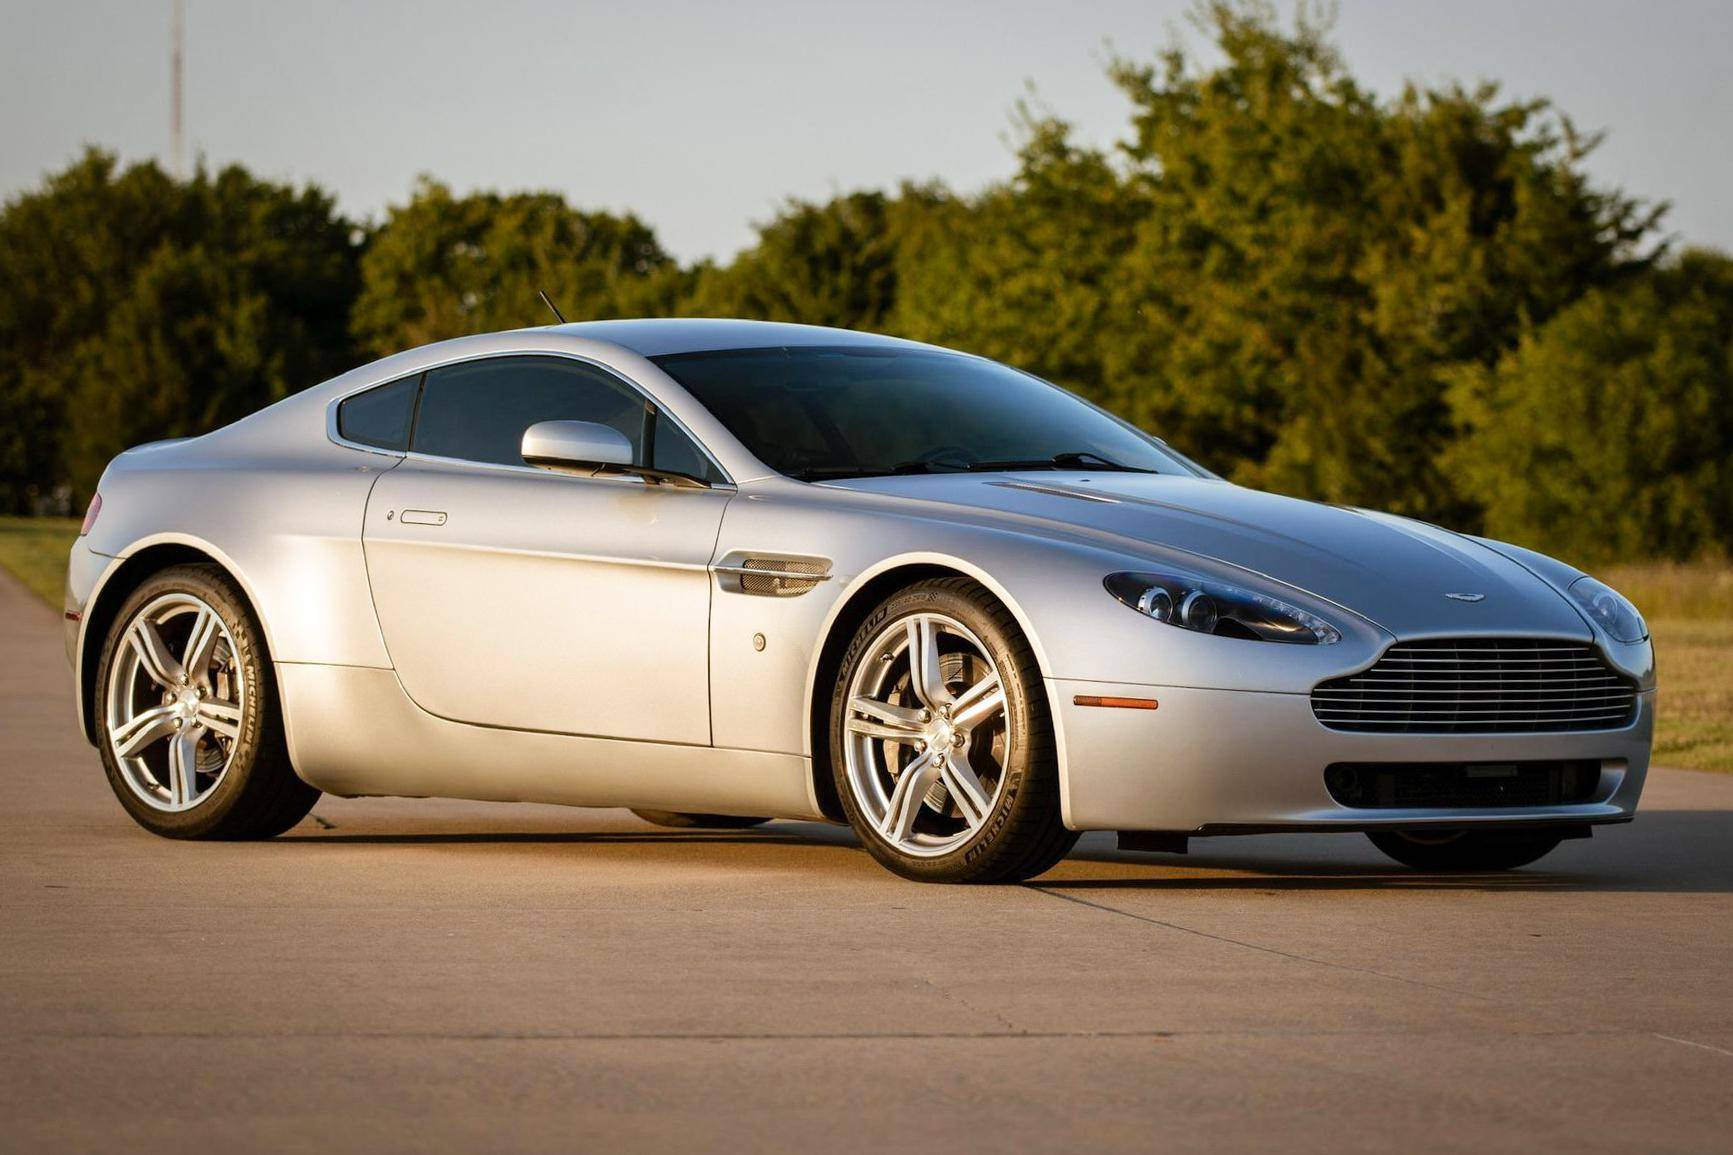 2007 Aston Martin V8 Vantage Auction Cars Bids